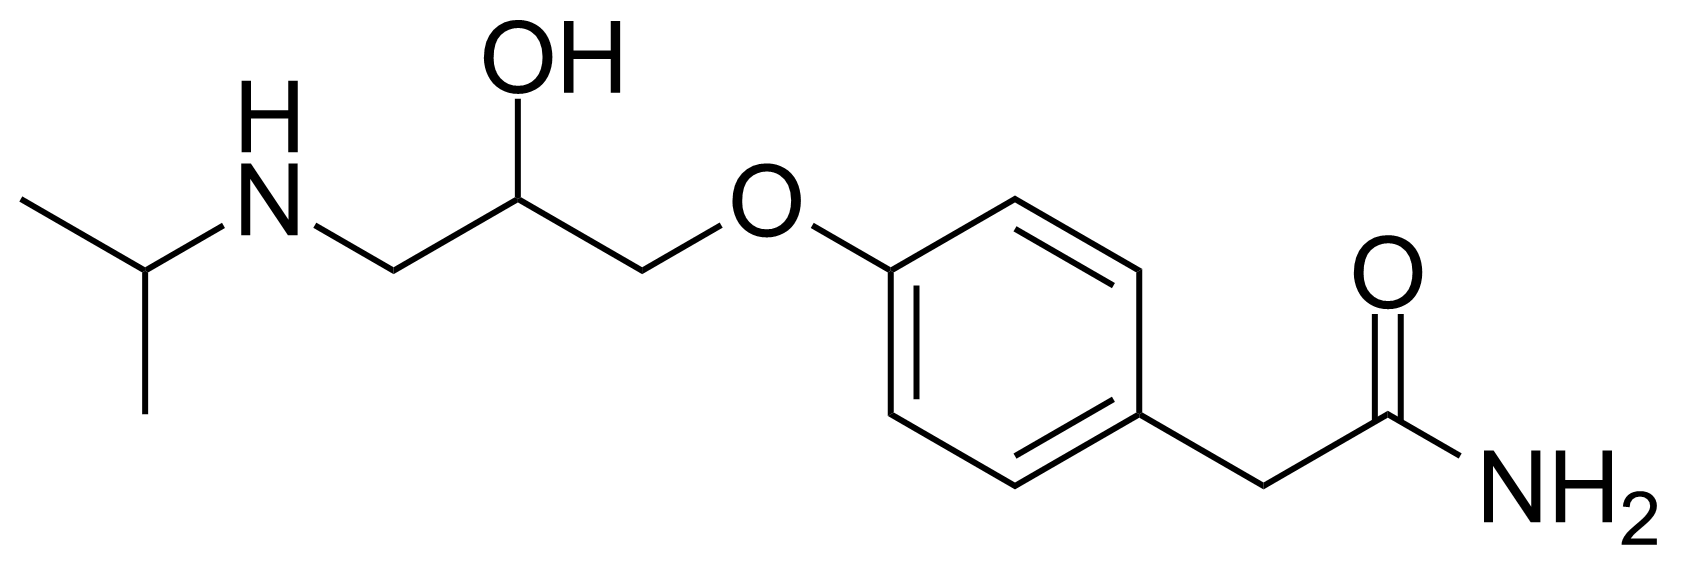 Structure of (R,S)-Atenolol